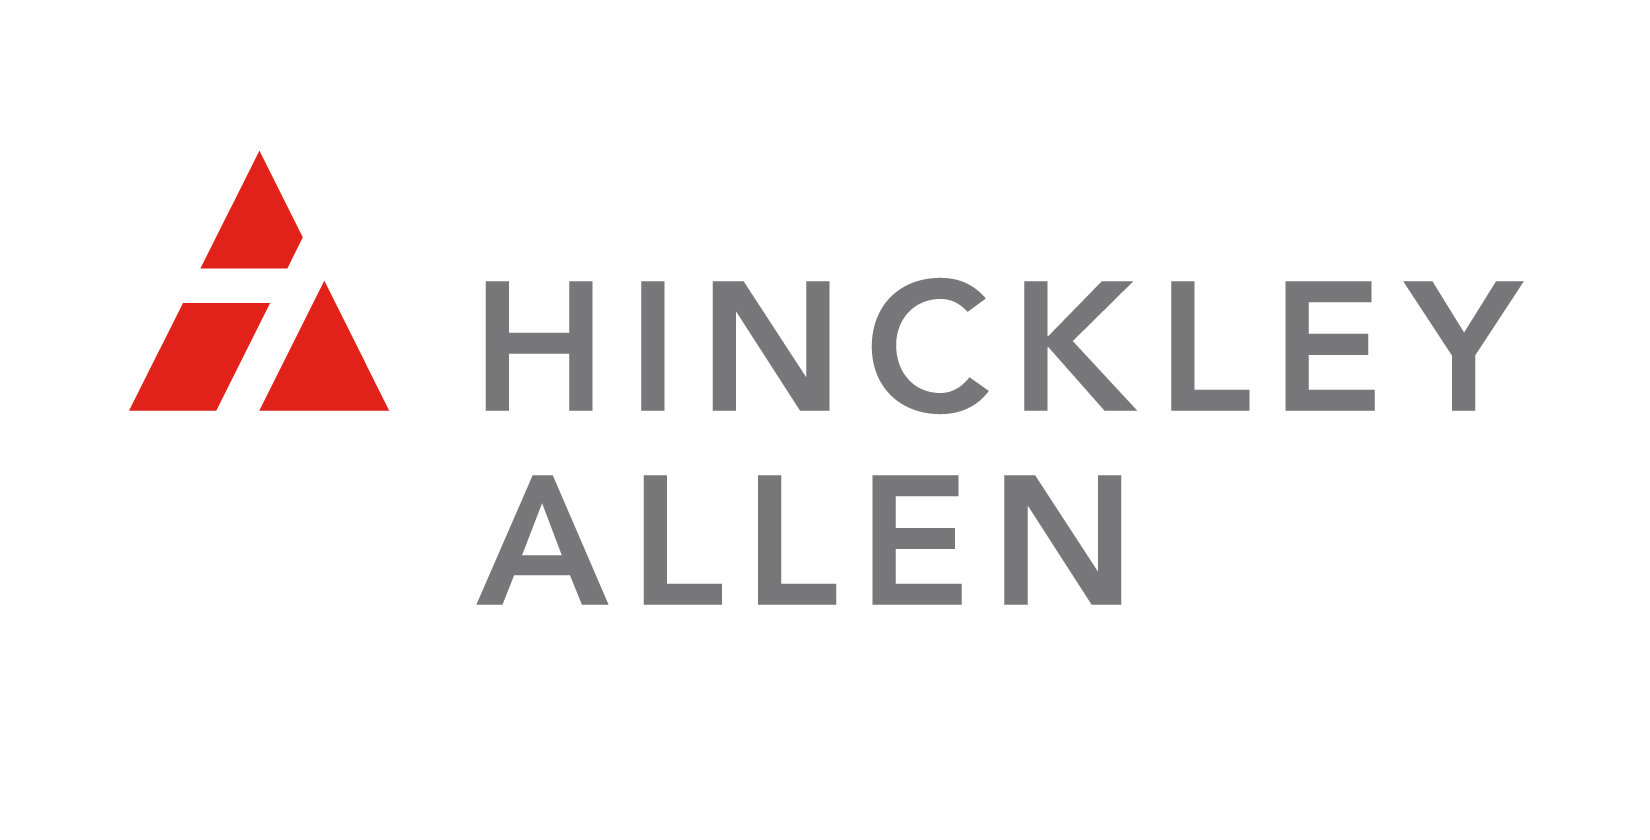 Hinckley Allen red and grey logo